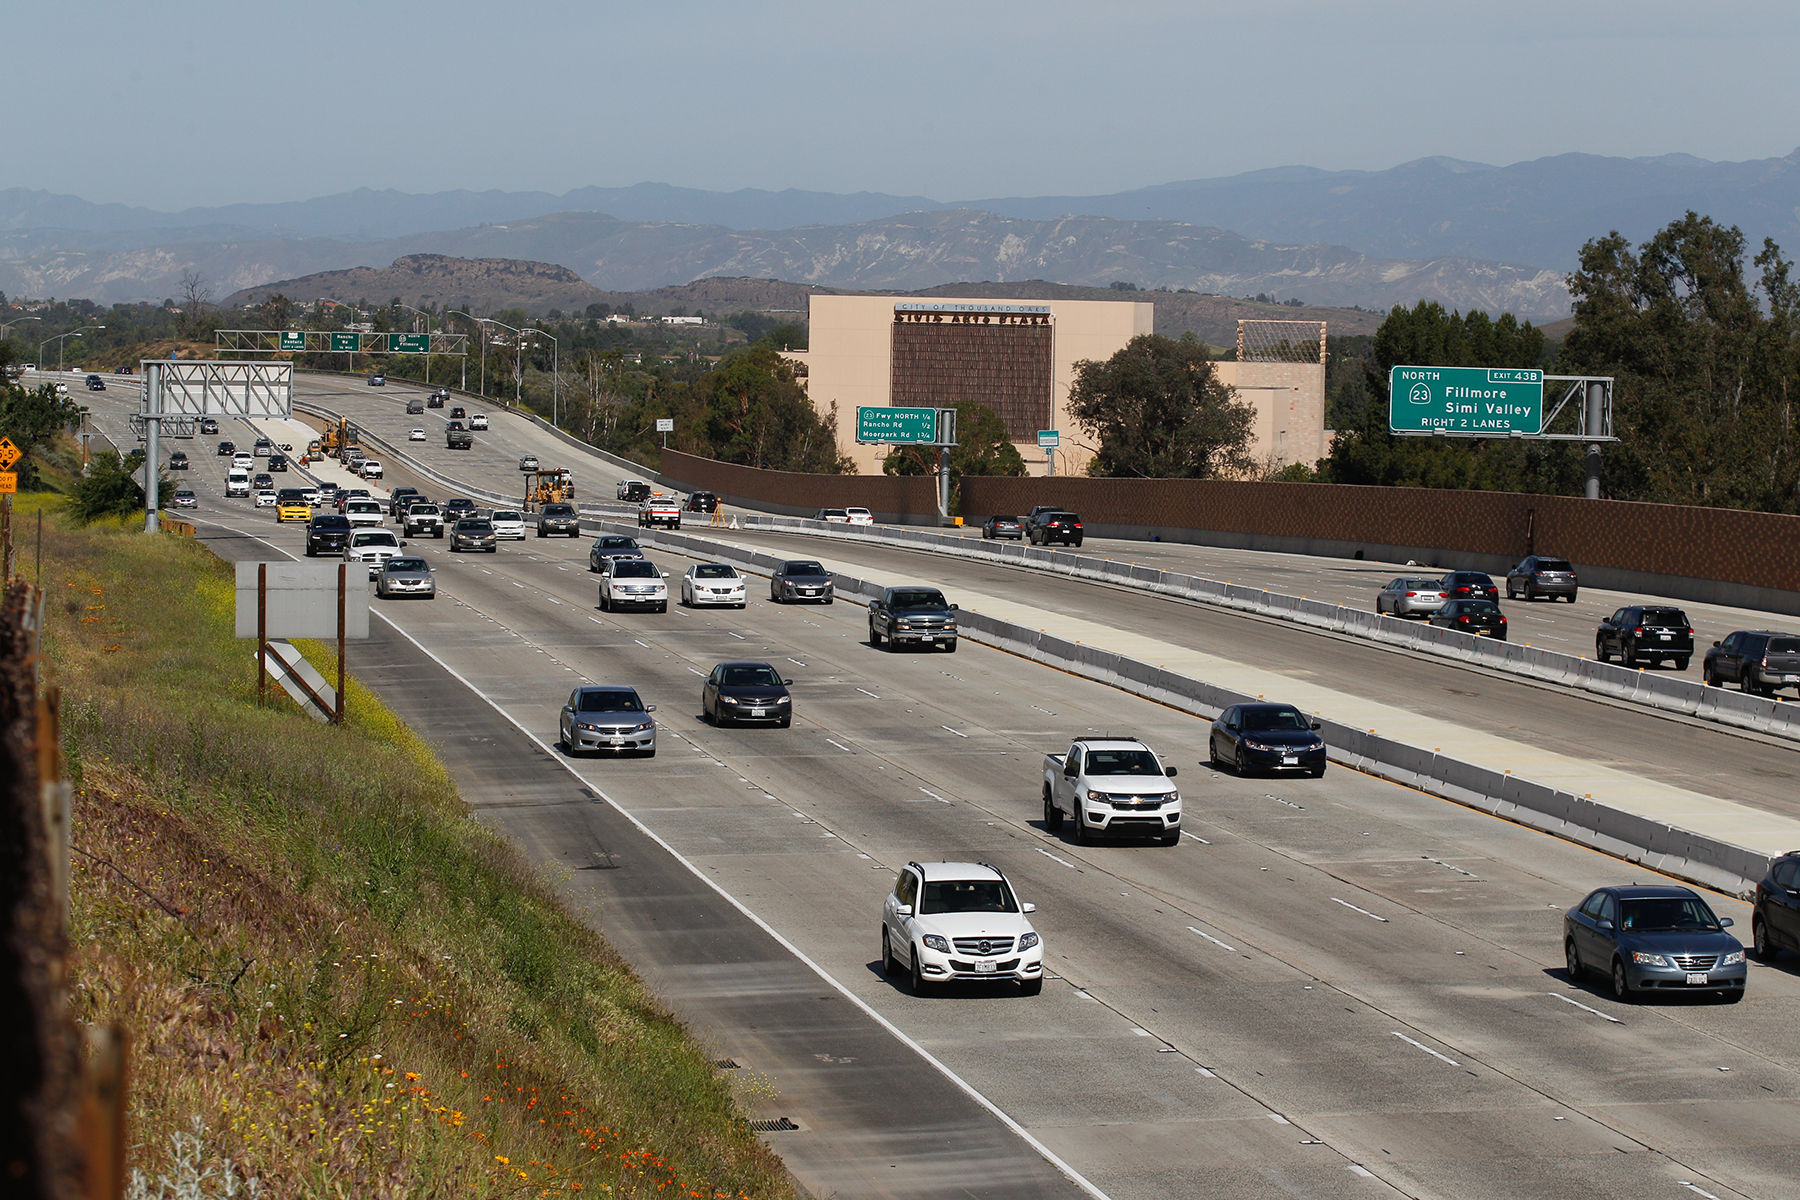 Two Men Were Arrested Monday Following An Alleged Road Rage Incident On The 101 Freeway In